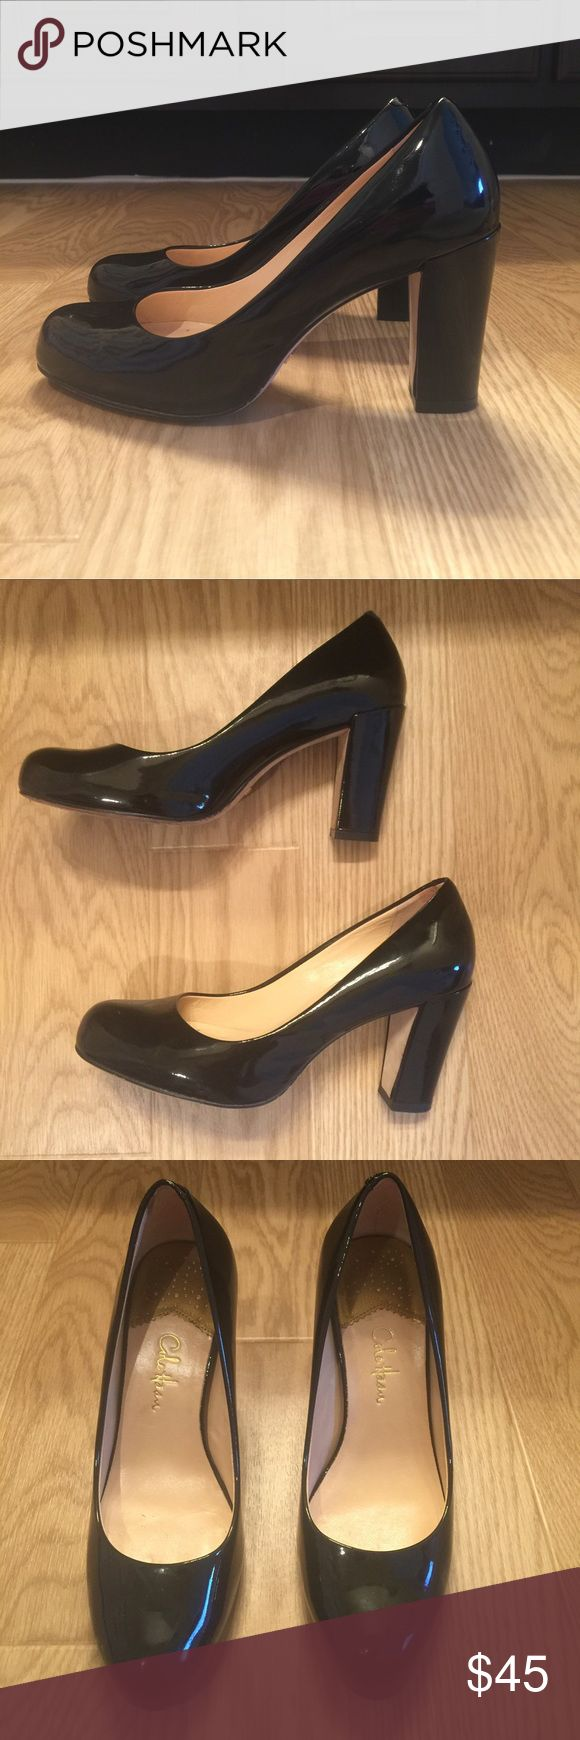 Cole Haan Shoes.  Size 6B Beautiful black leather Cole Haan pumps! Cole Haan Shoes Heels